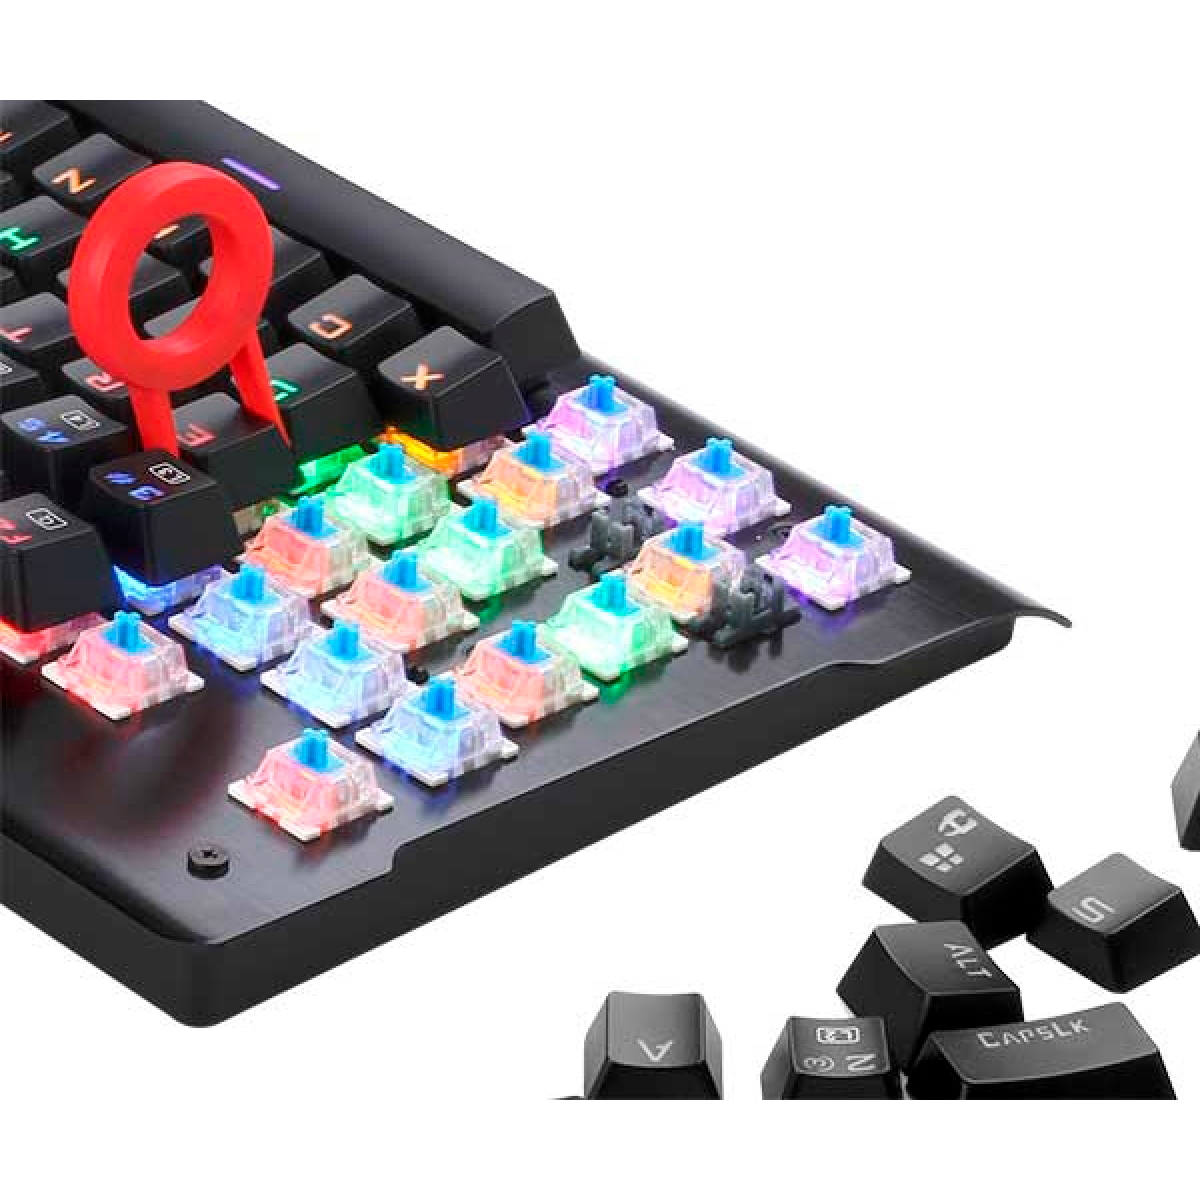 Teclado Mecânico Gamer Redragon Visnu K561 RGB, Switch Blue, ABNT2, Black